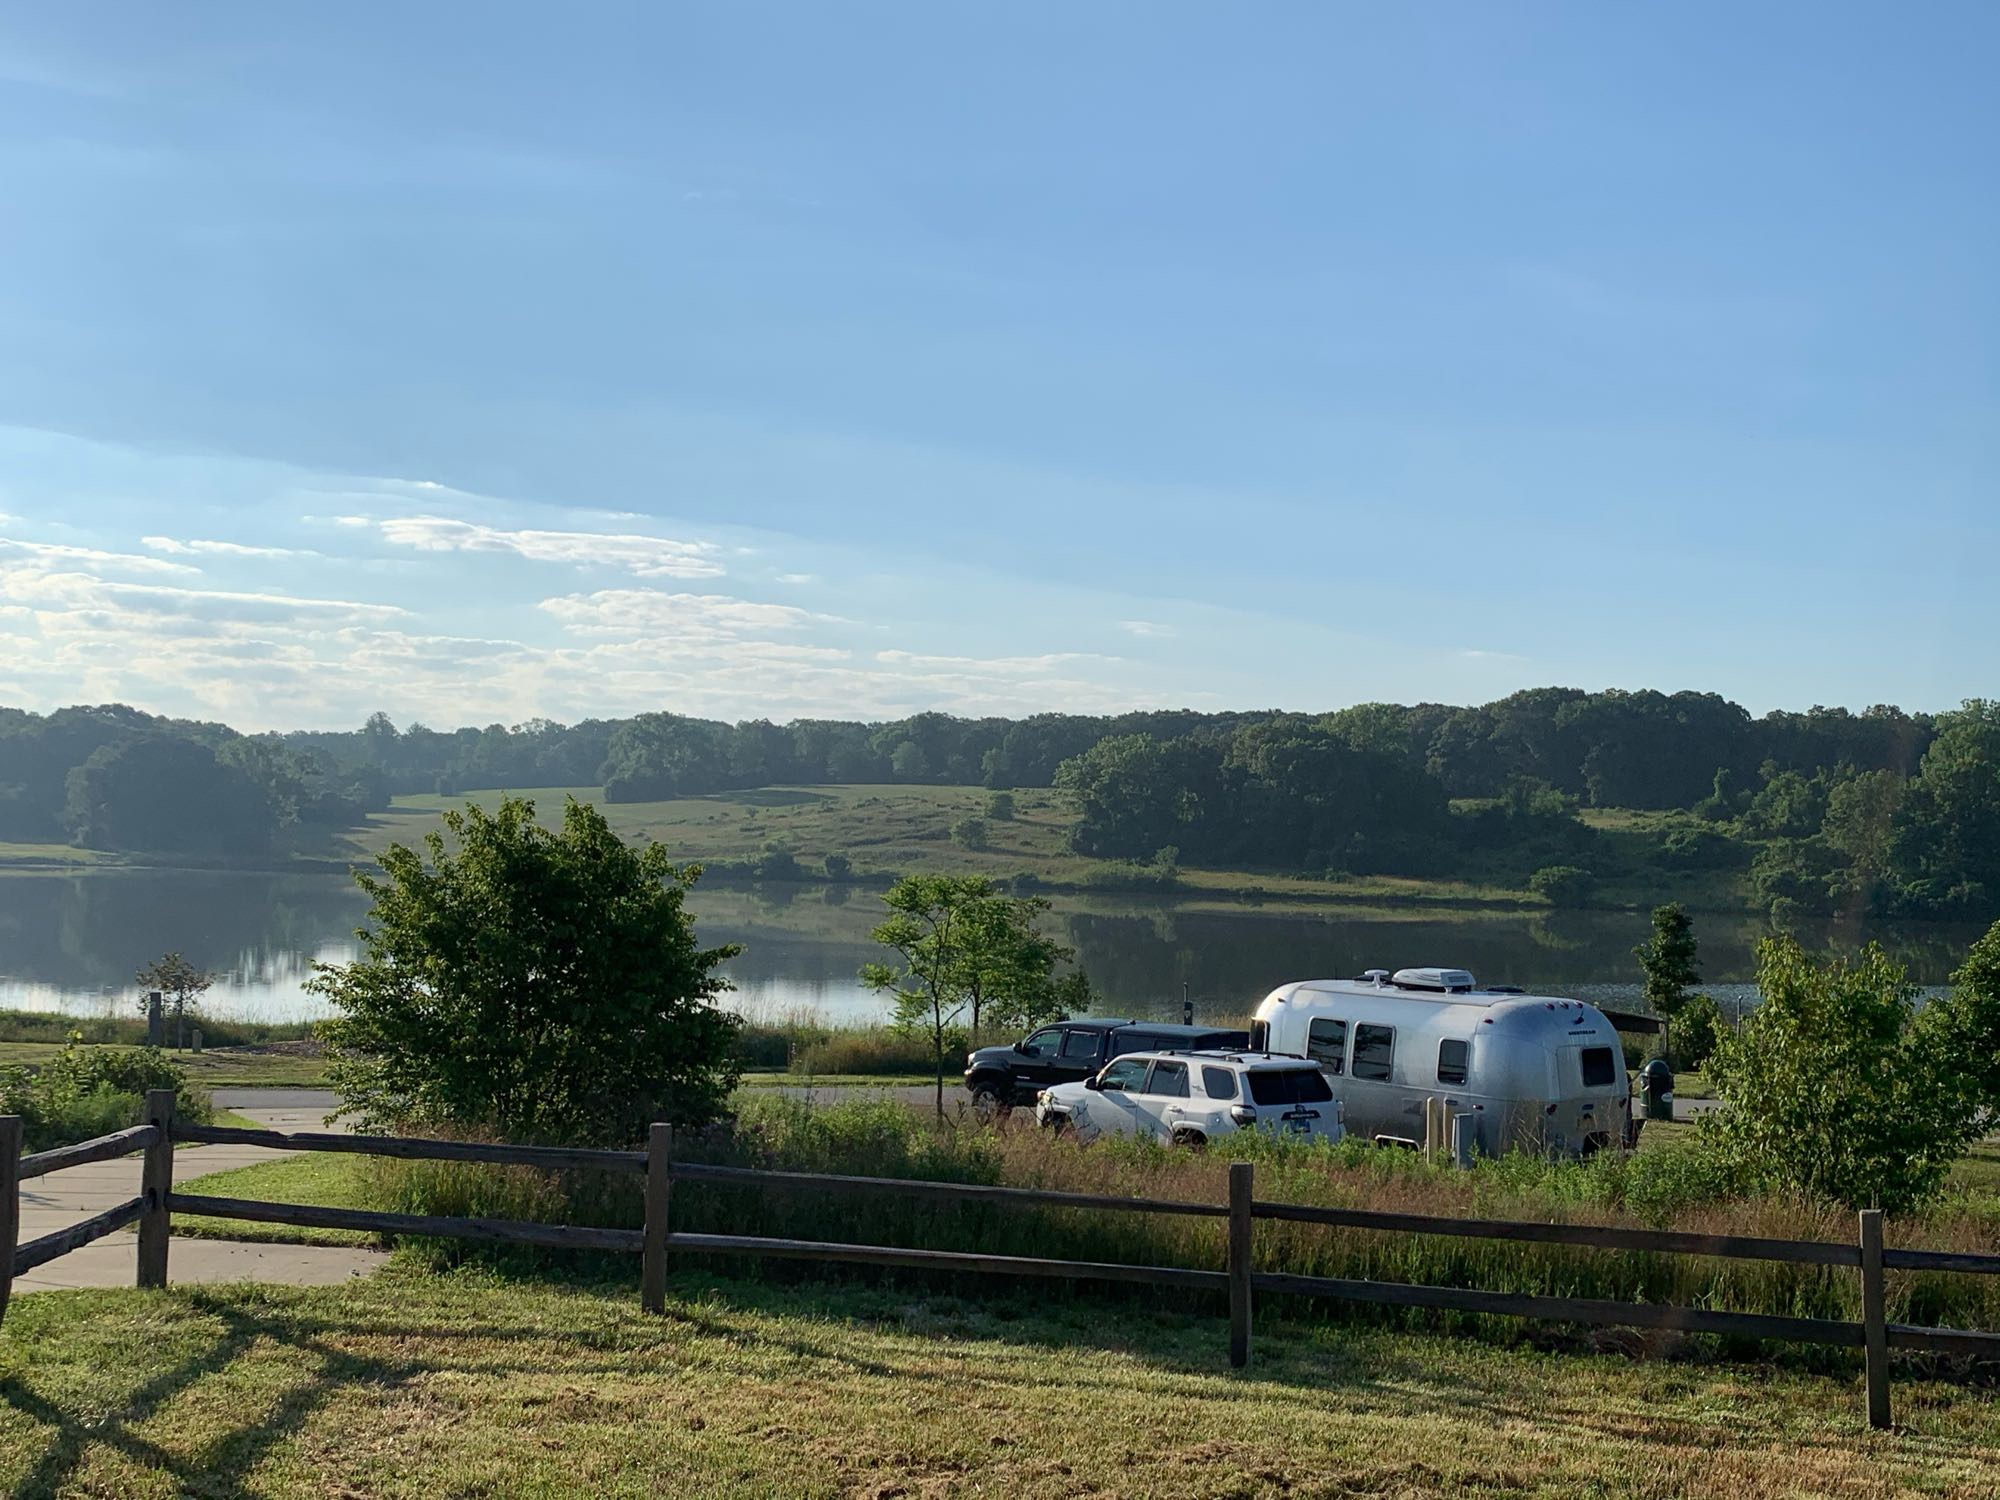 Camp Bullfrog Lake in Willow Springs, IL is a beautiful getaway that we can deliver to!. Airstream Bambi 2020